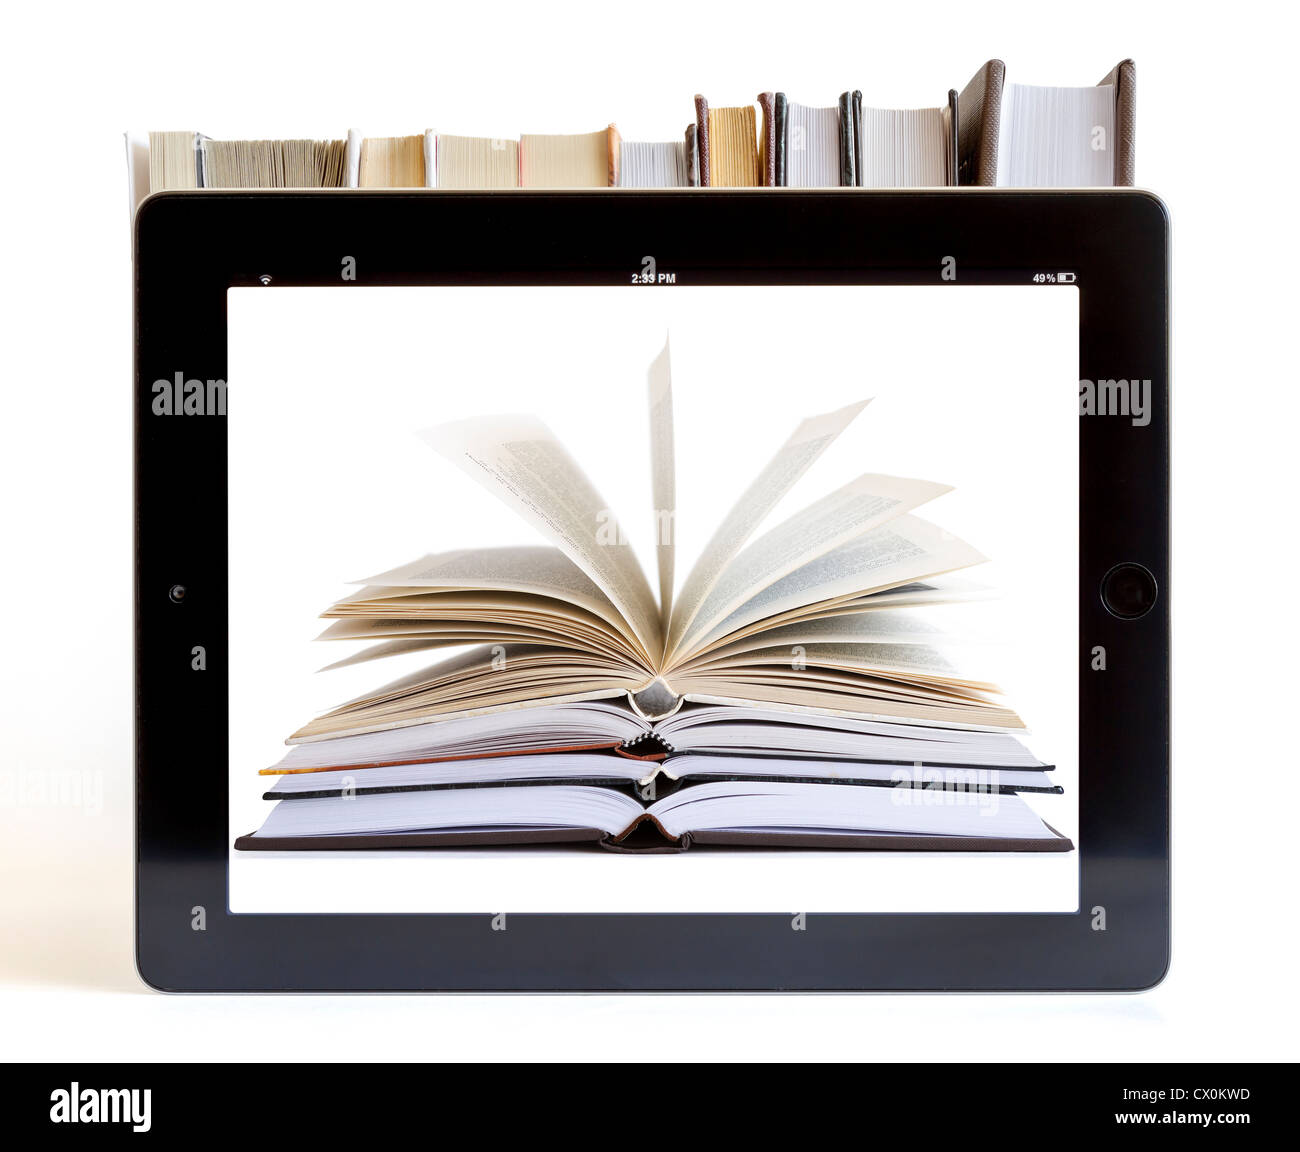 Books and tablet computer isolated on white, digital library concept - Stock Image